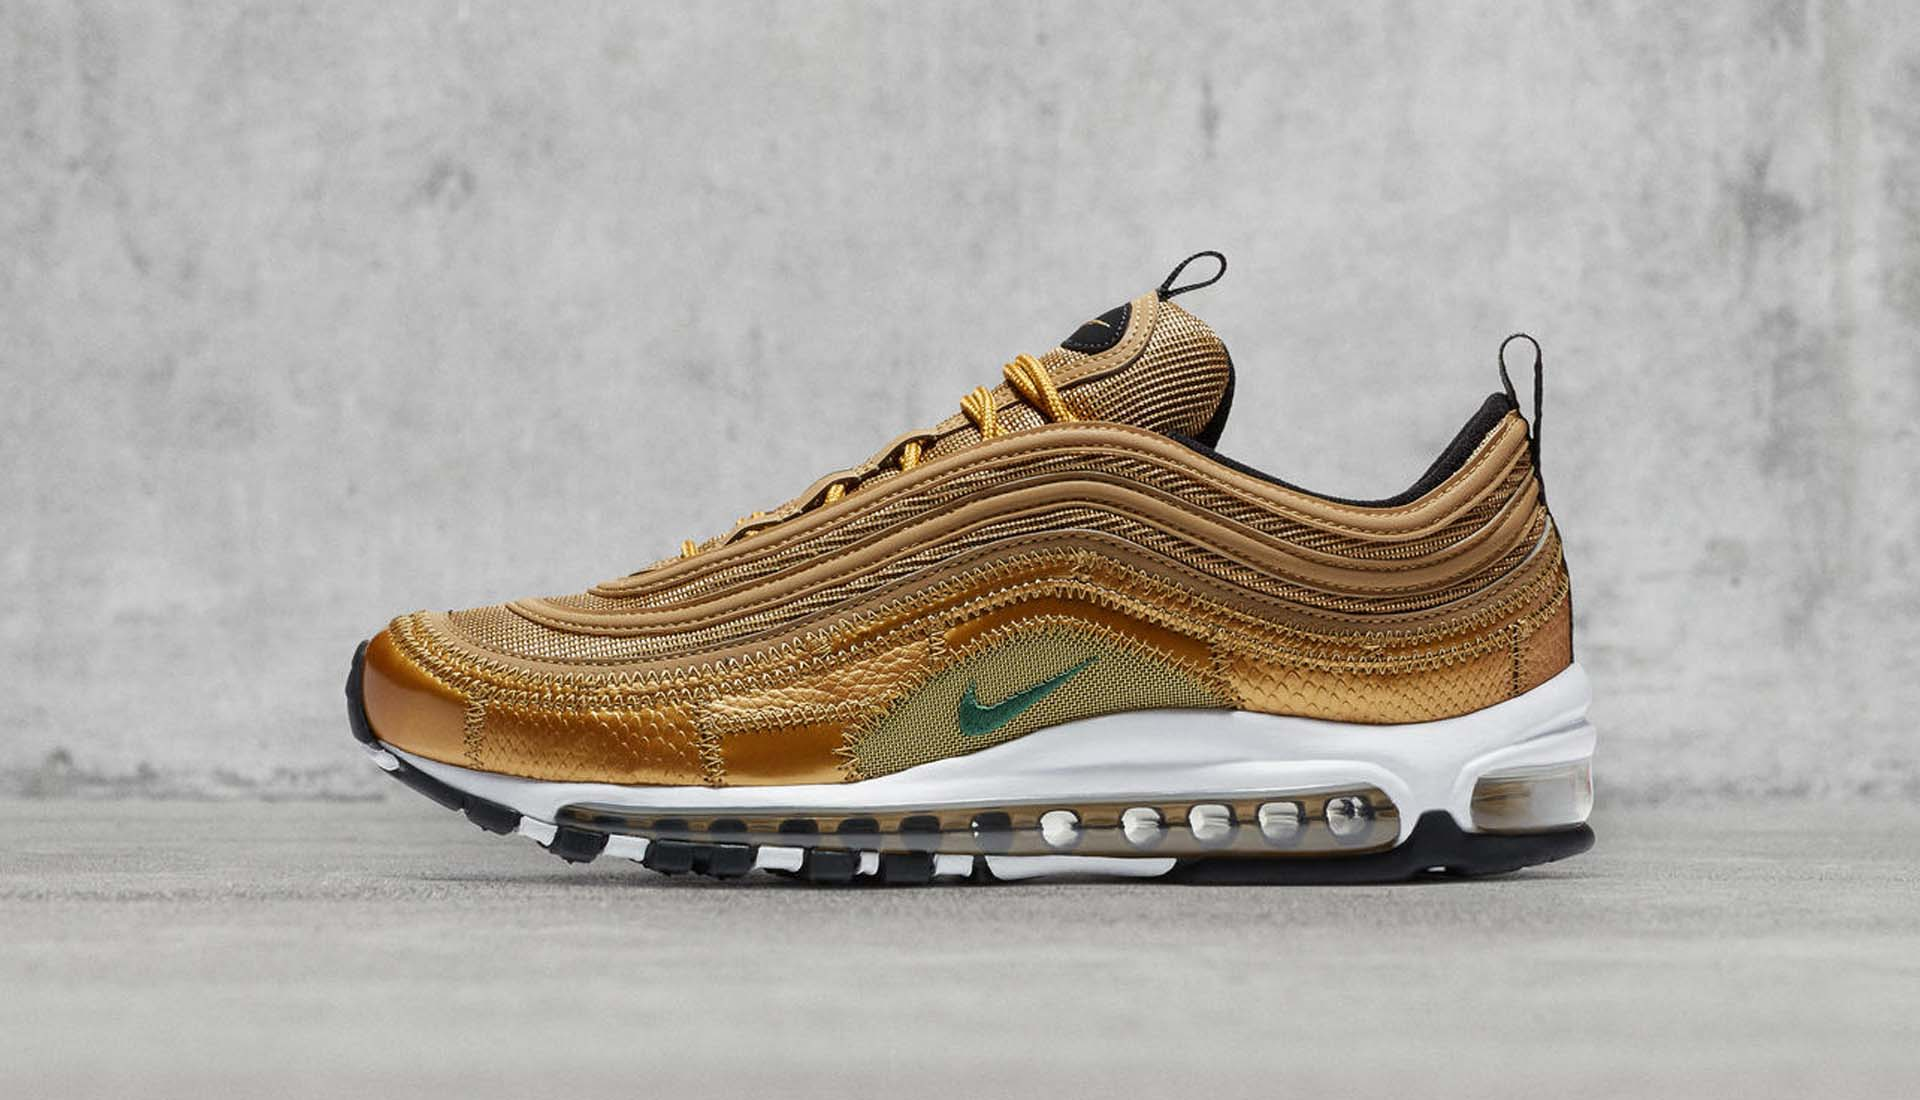 Nike Launch The Air Max 97 CR7 Sneakers - SoccerBible 670f68772